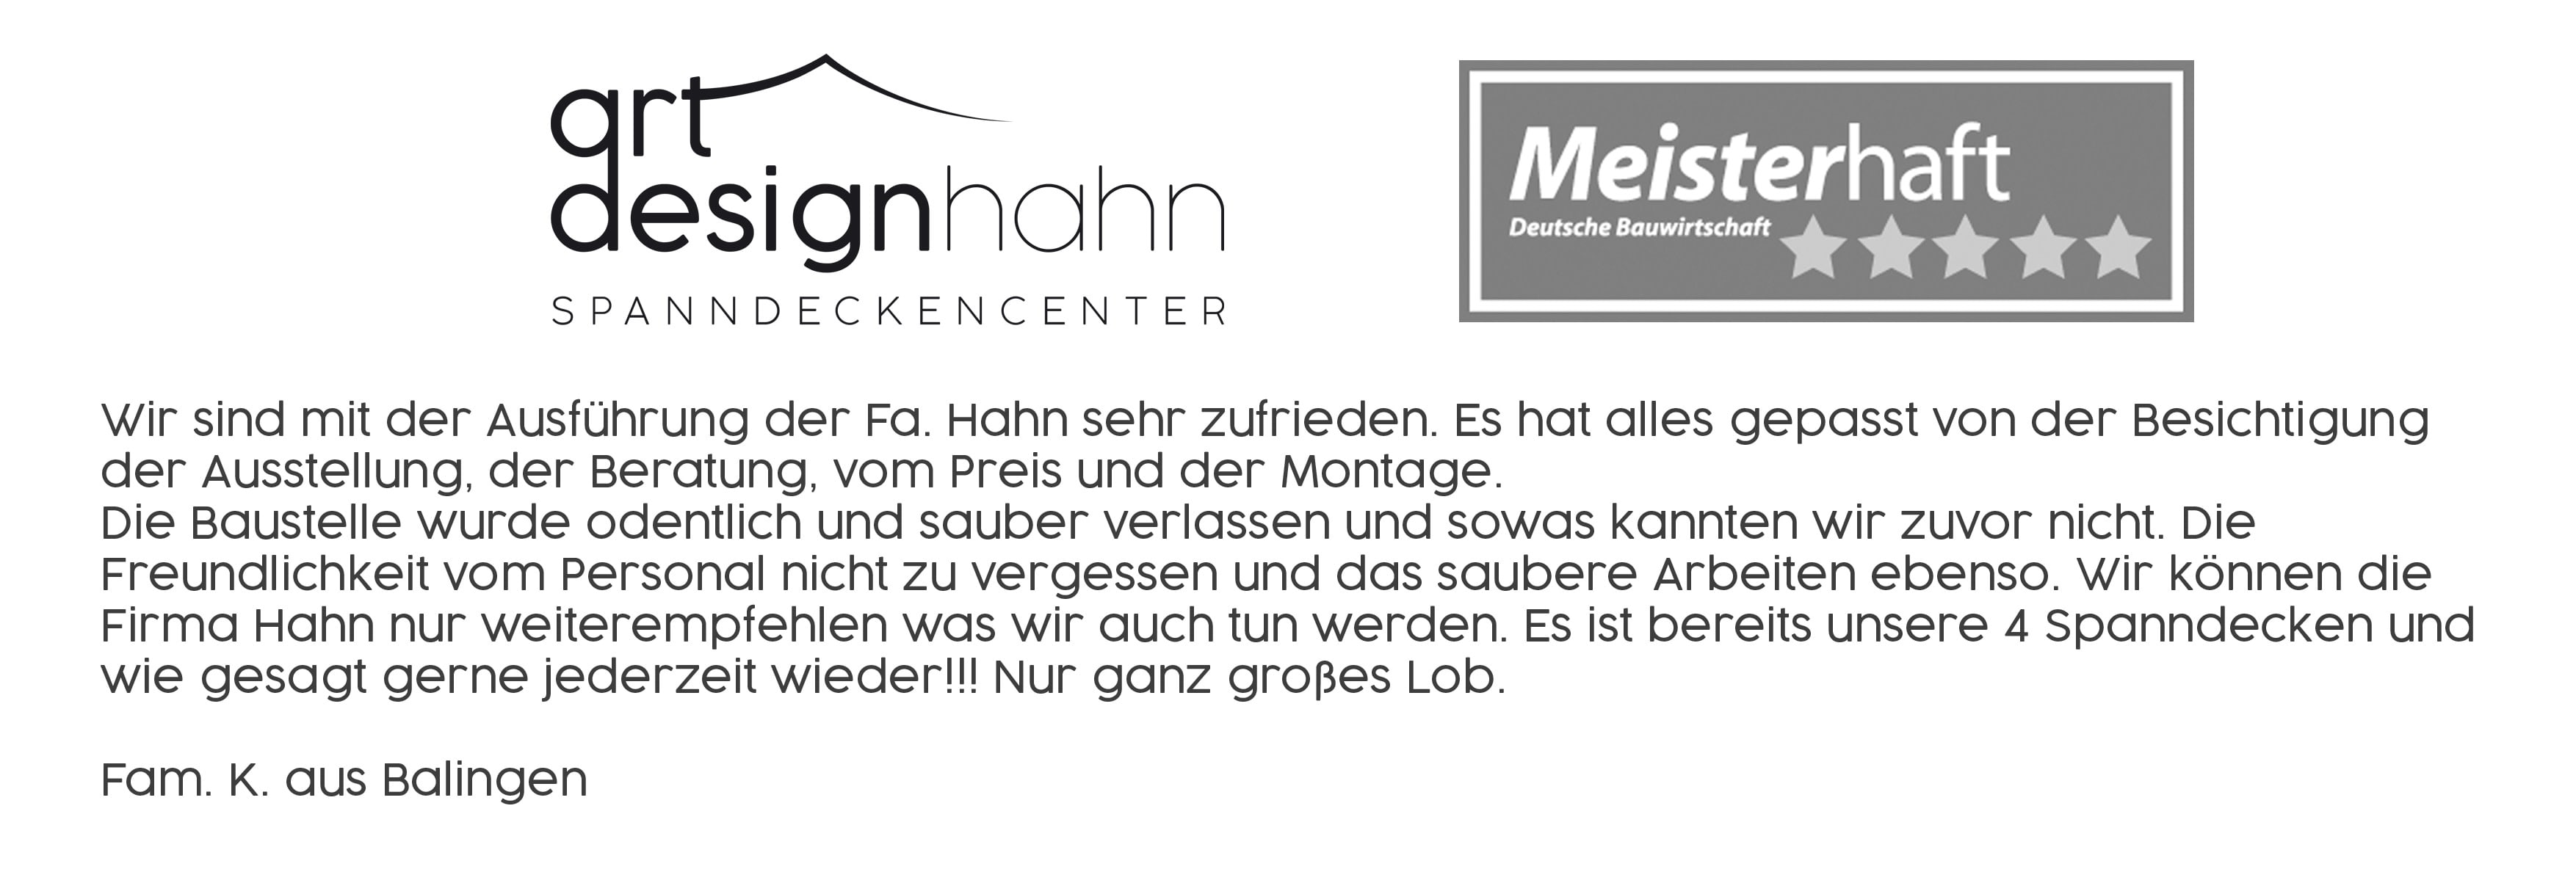 Art Design Hahn Meisterhafte Rezension 38